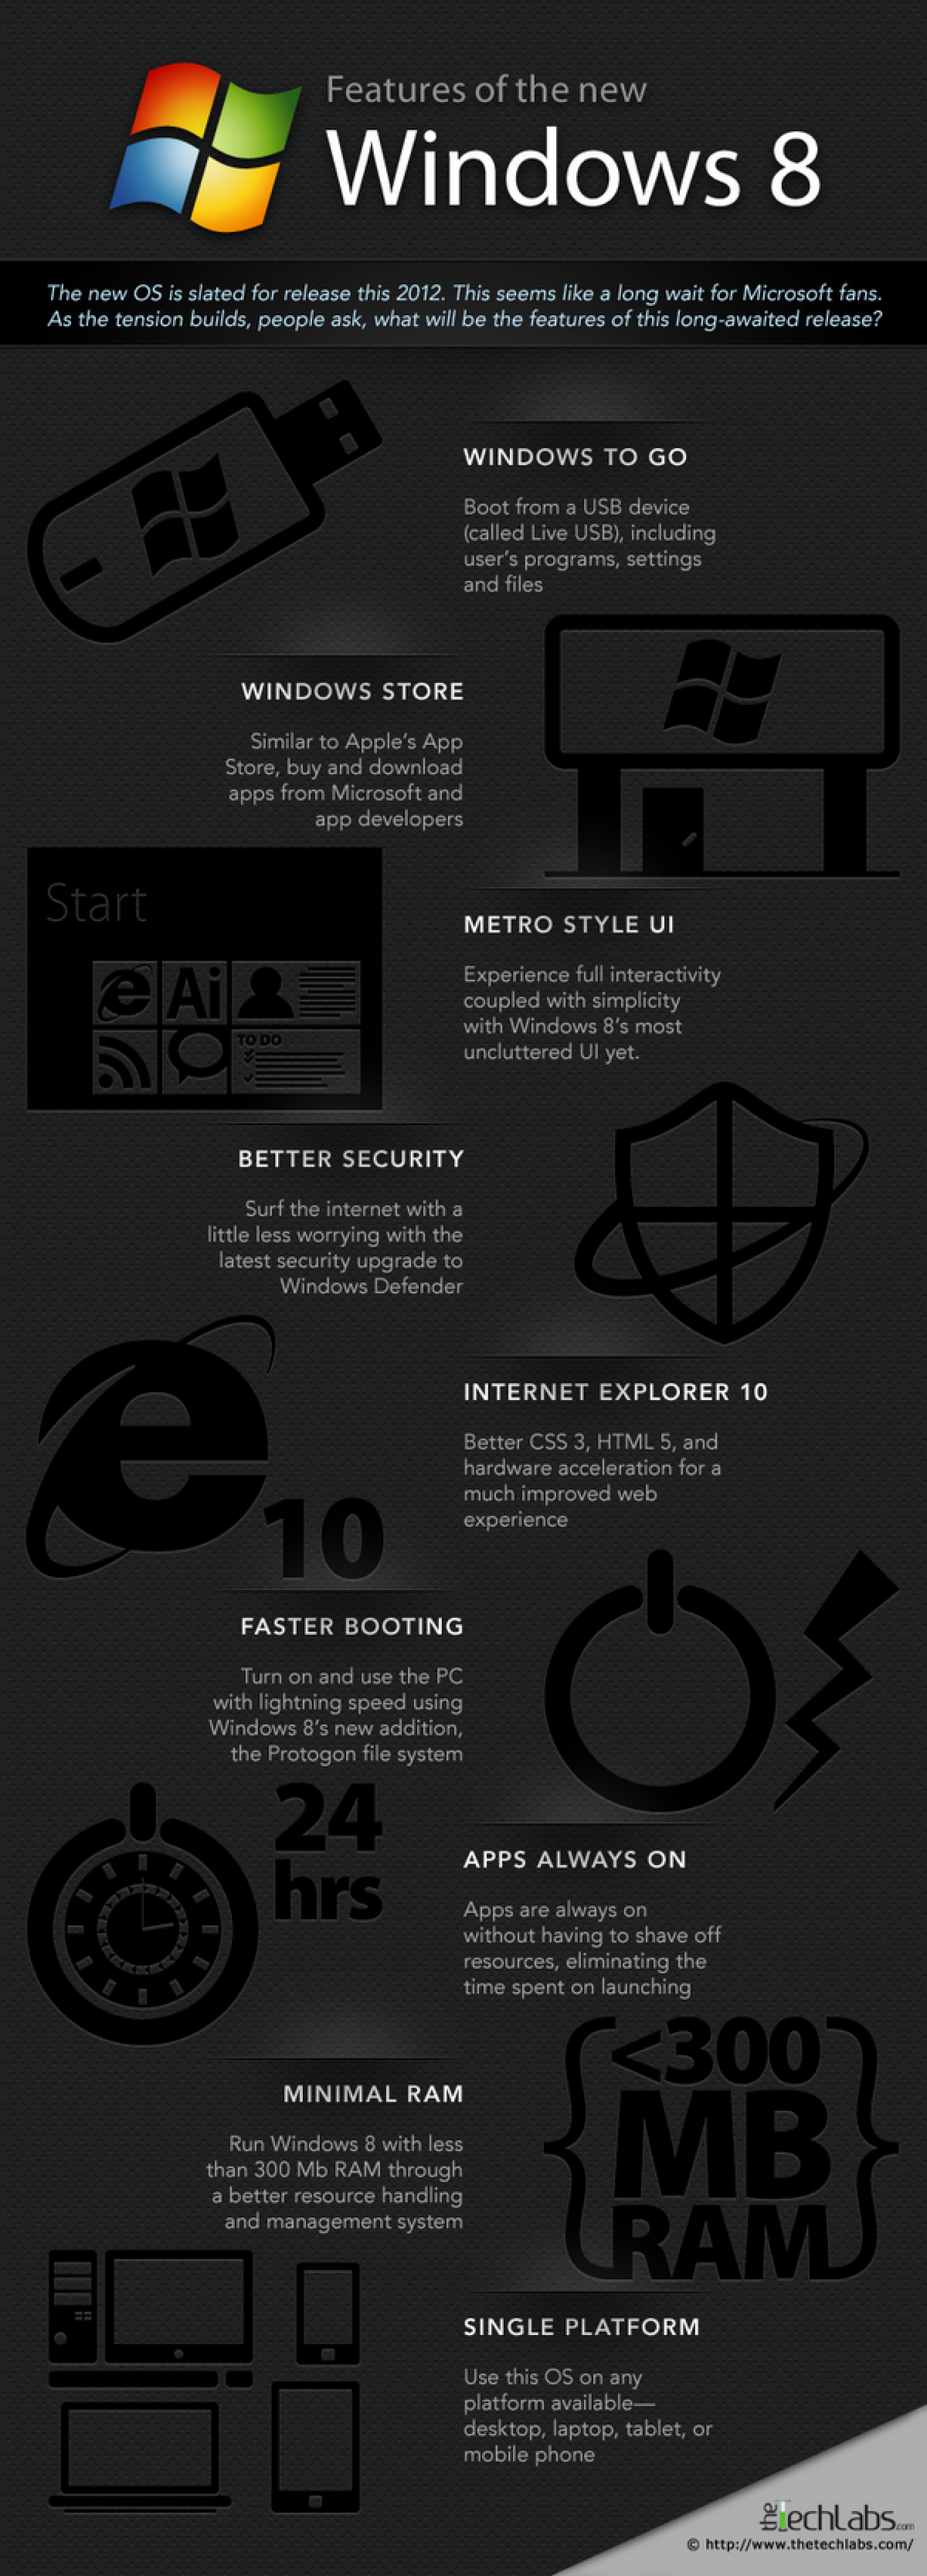 Windows 8 Features & Release Date Infographic